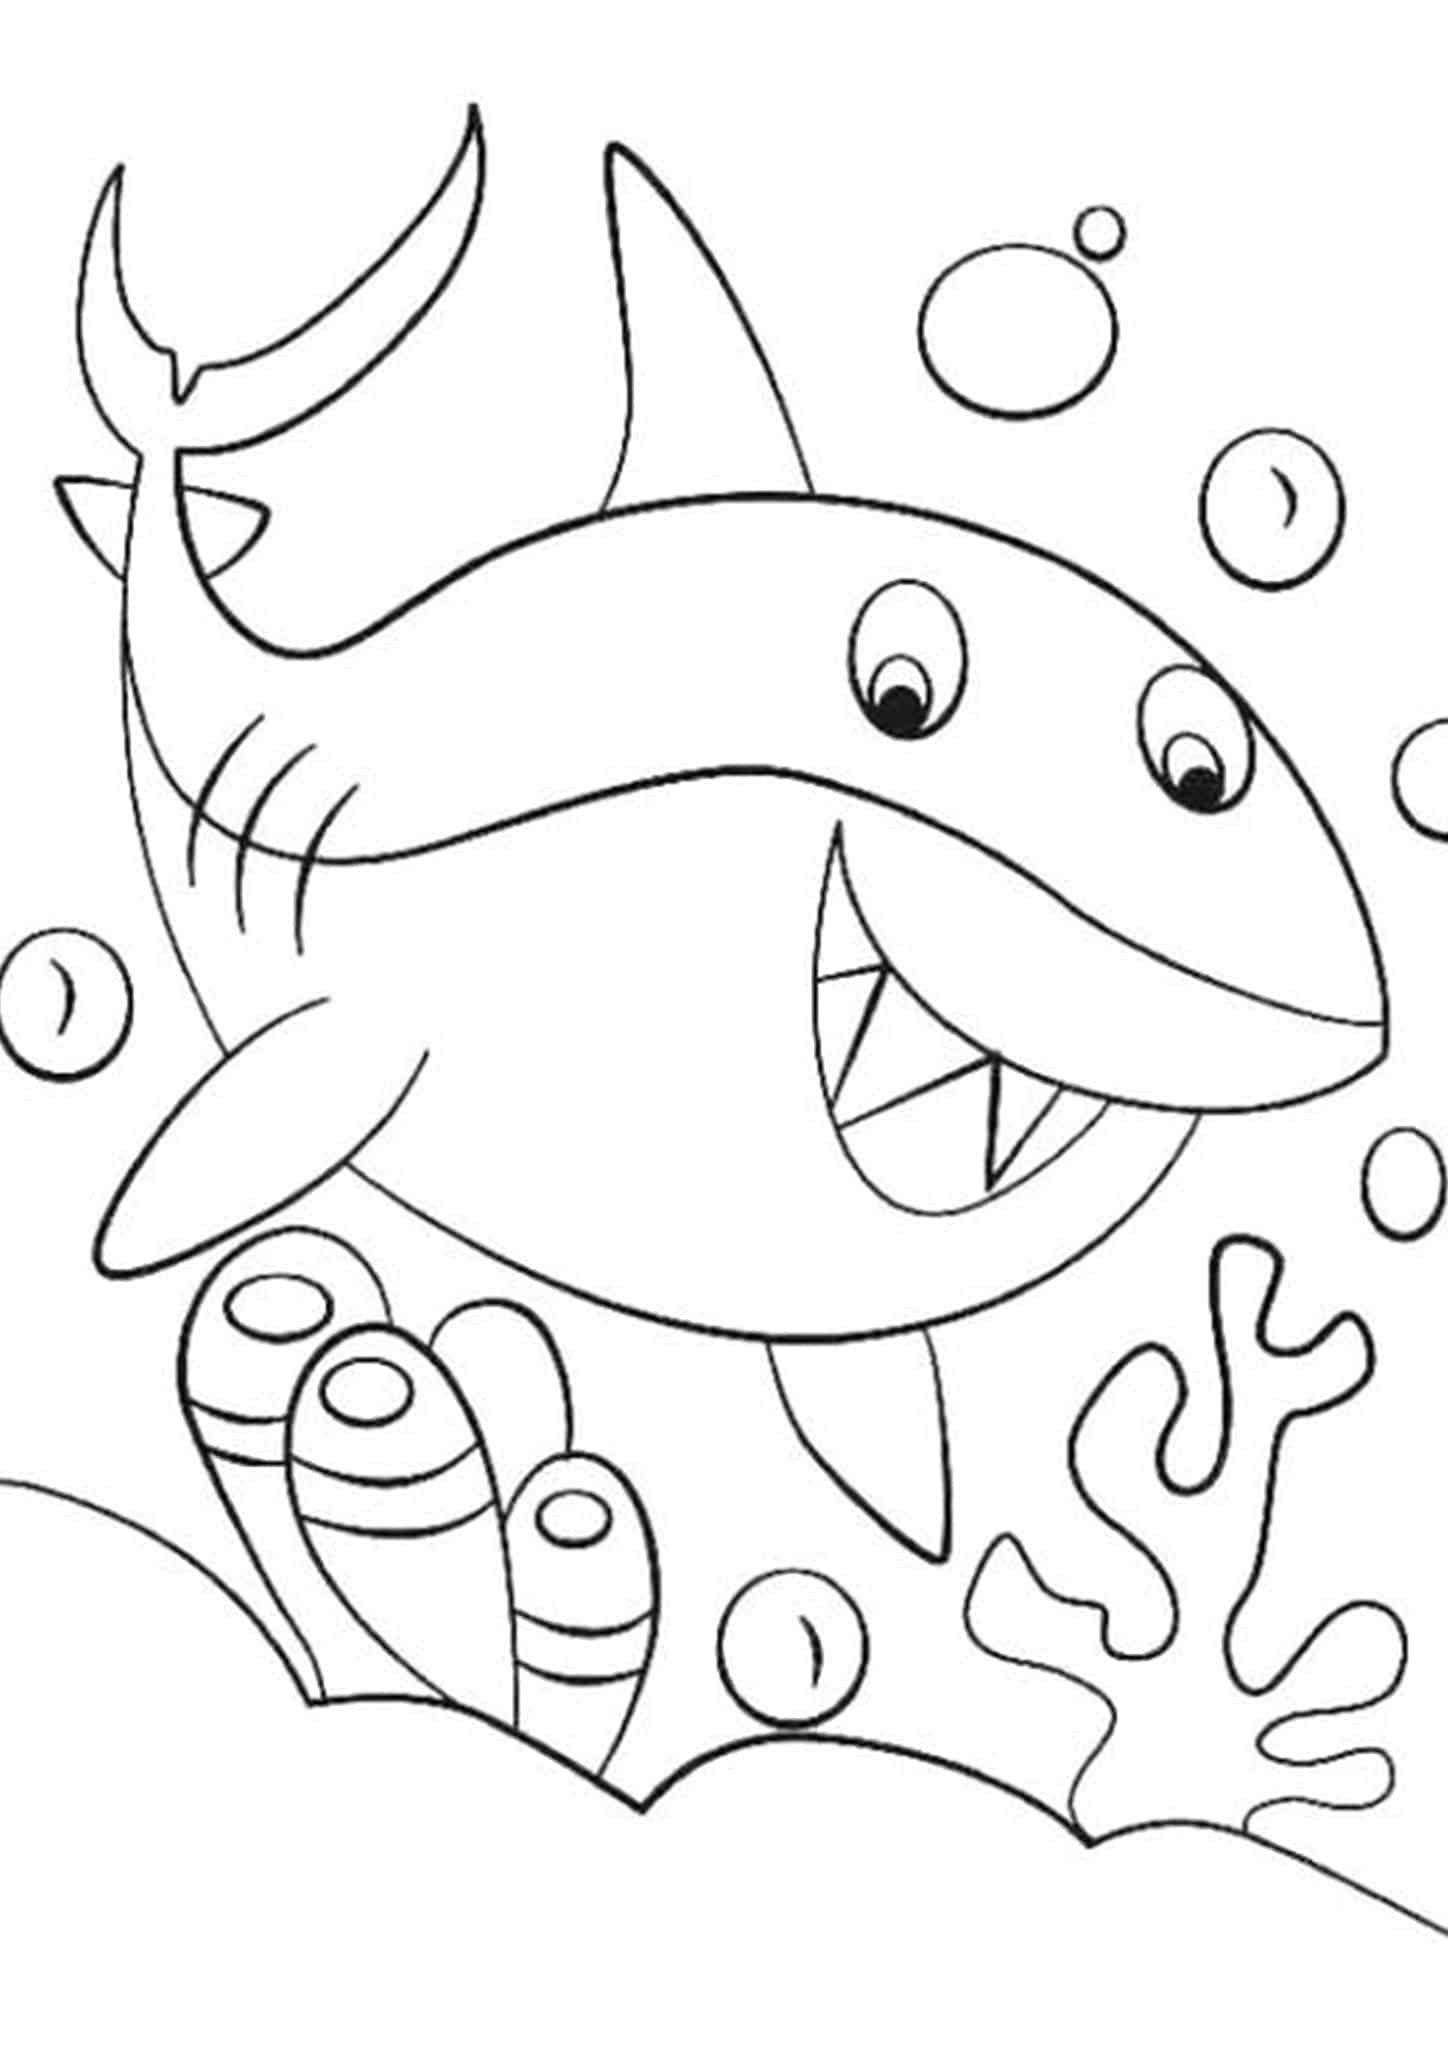 printable shark coloring pages coloring pages shark coloring pages free and printable coloring shark pages printable